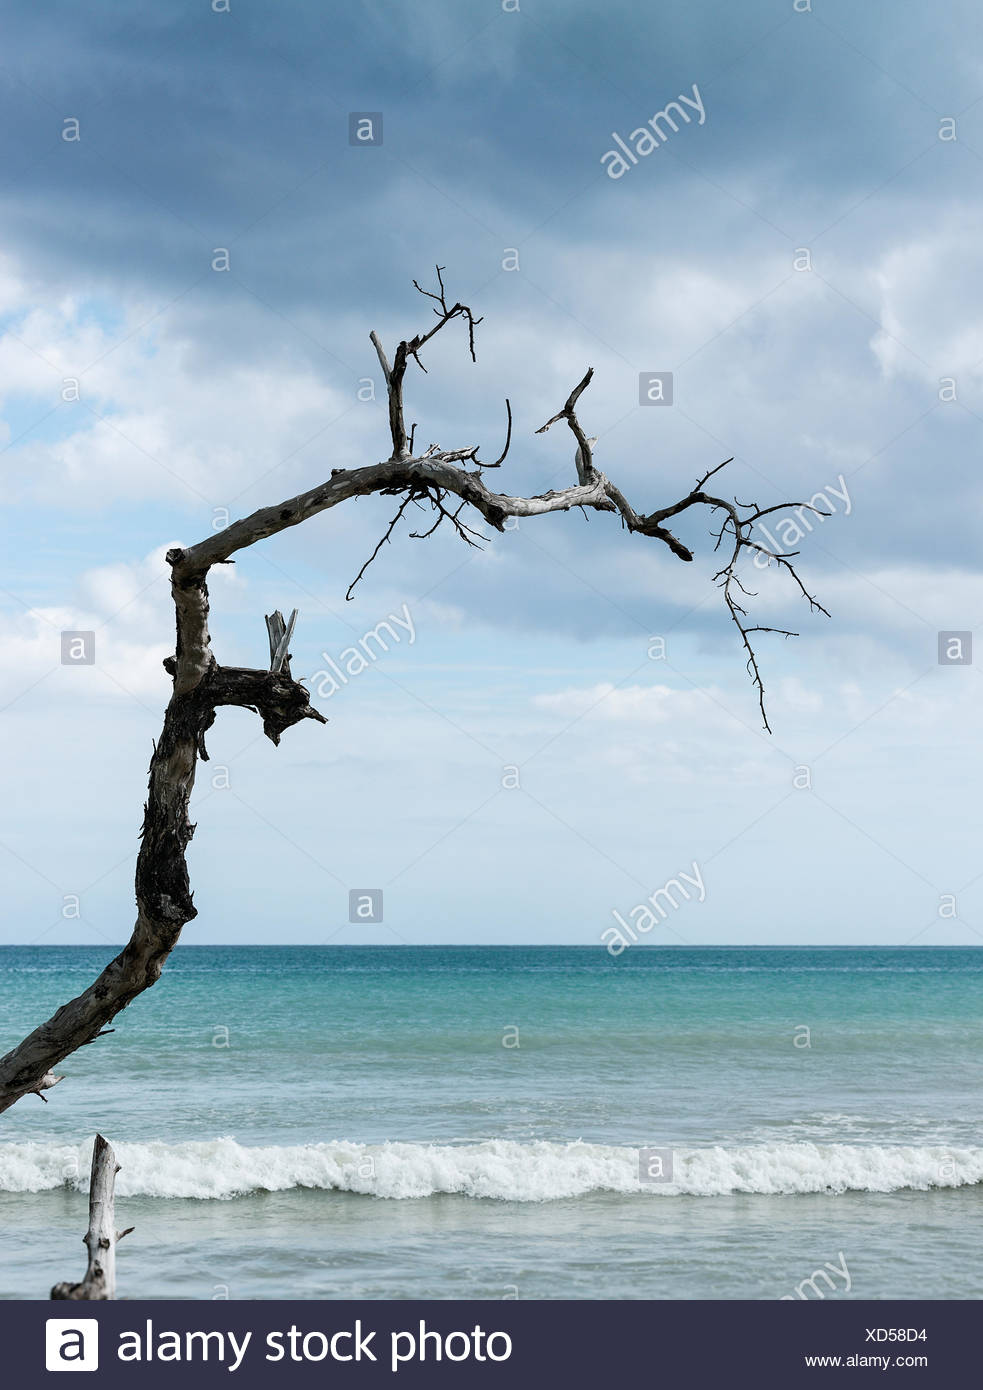 Jagged piece of driftwood reaching out to the ocean water, Negril, Jamaica - Stock Image